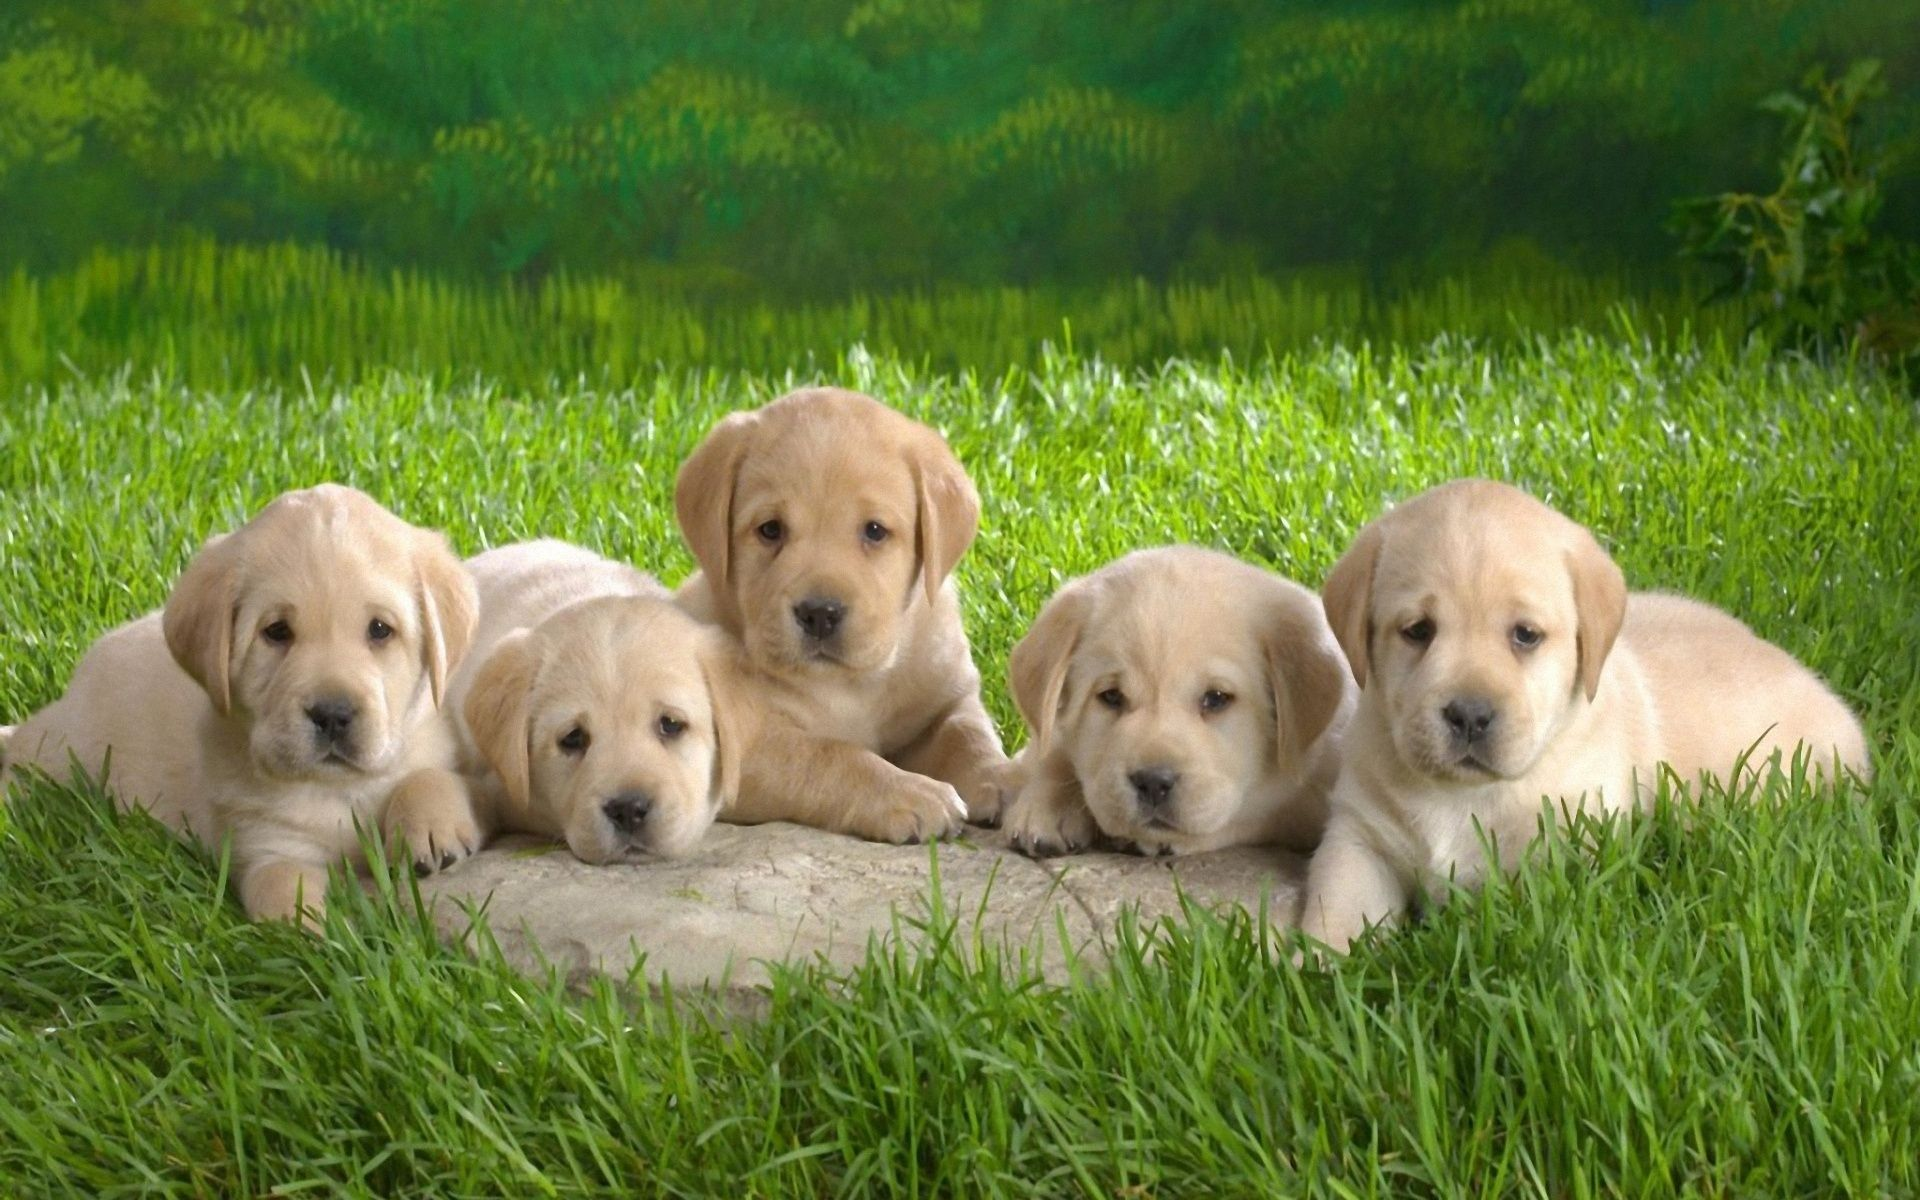 Free Puppy Wallpapers For Computer Wallpaper Cave Labrador Retriever Puppies Puppies Retriever Puppy